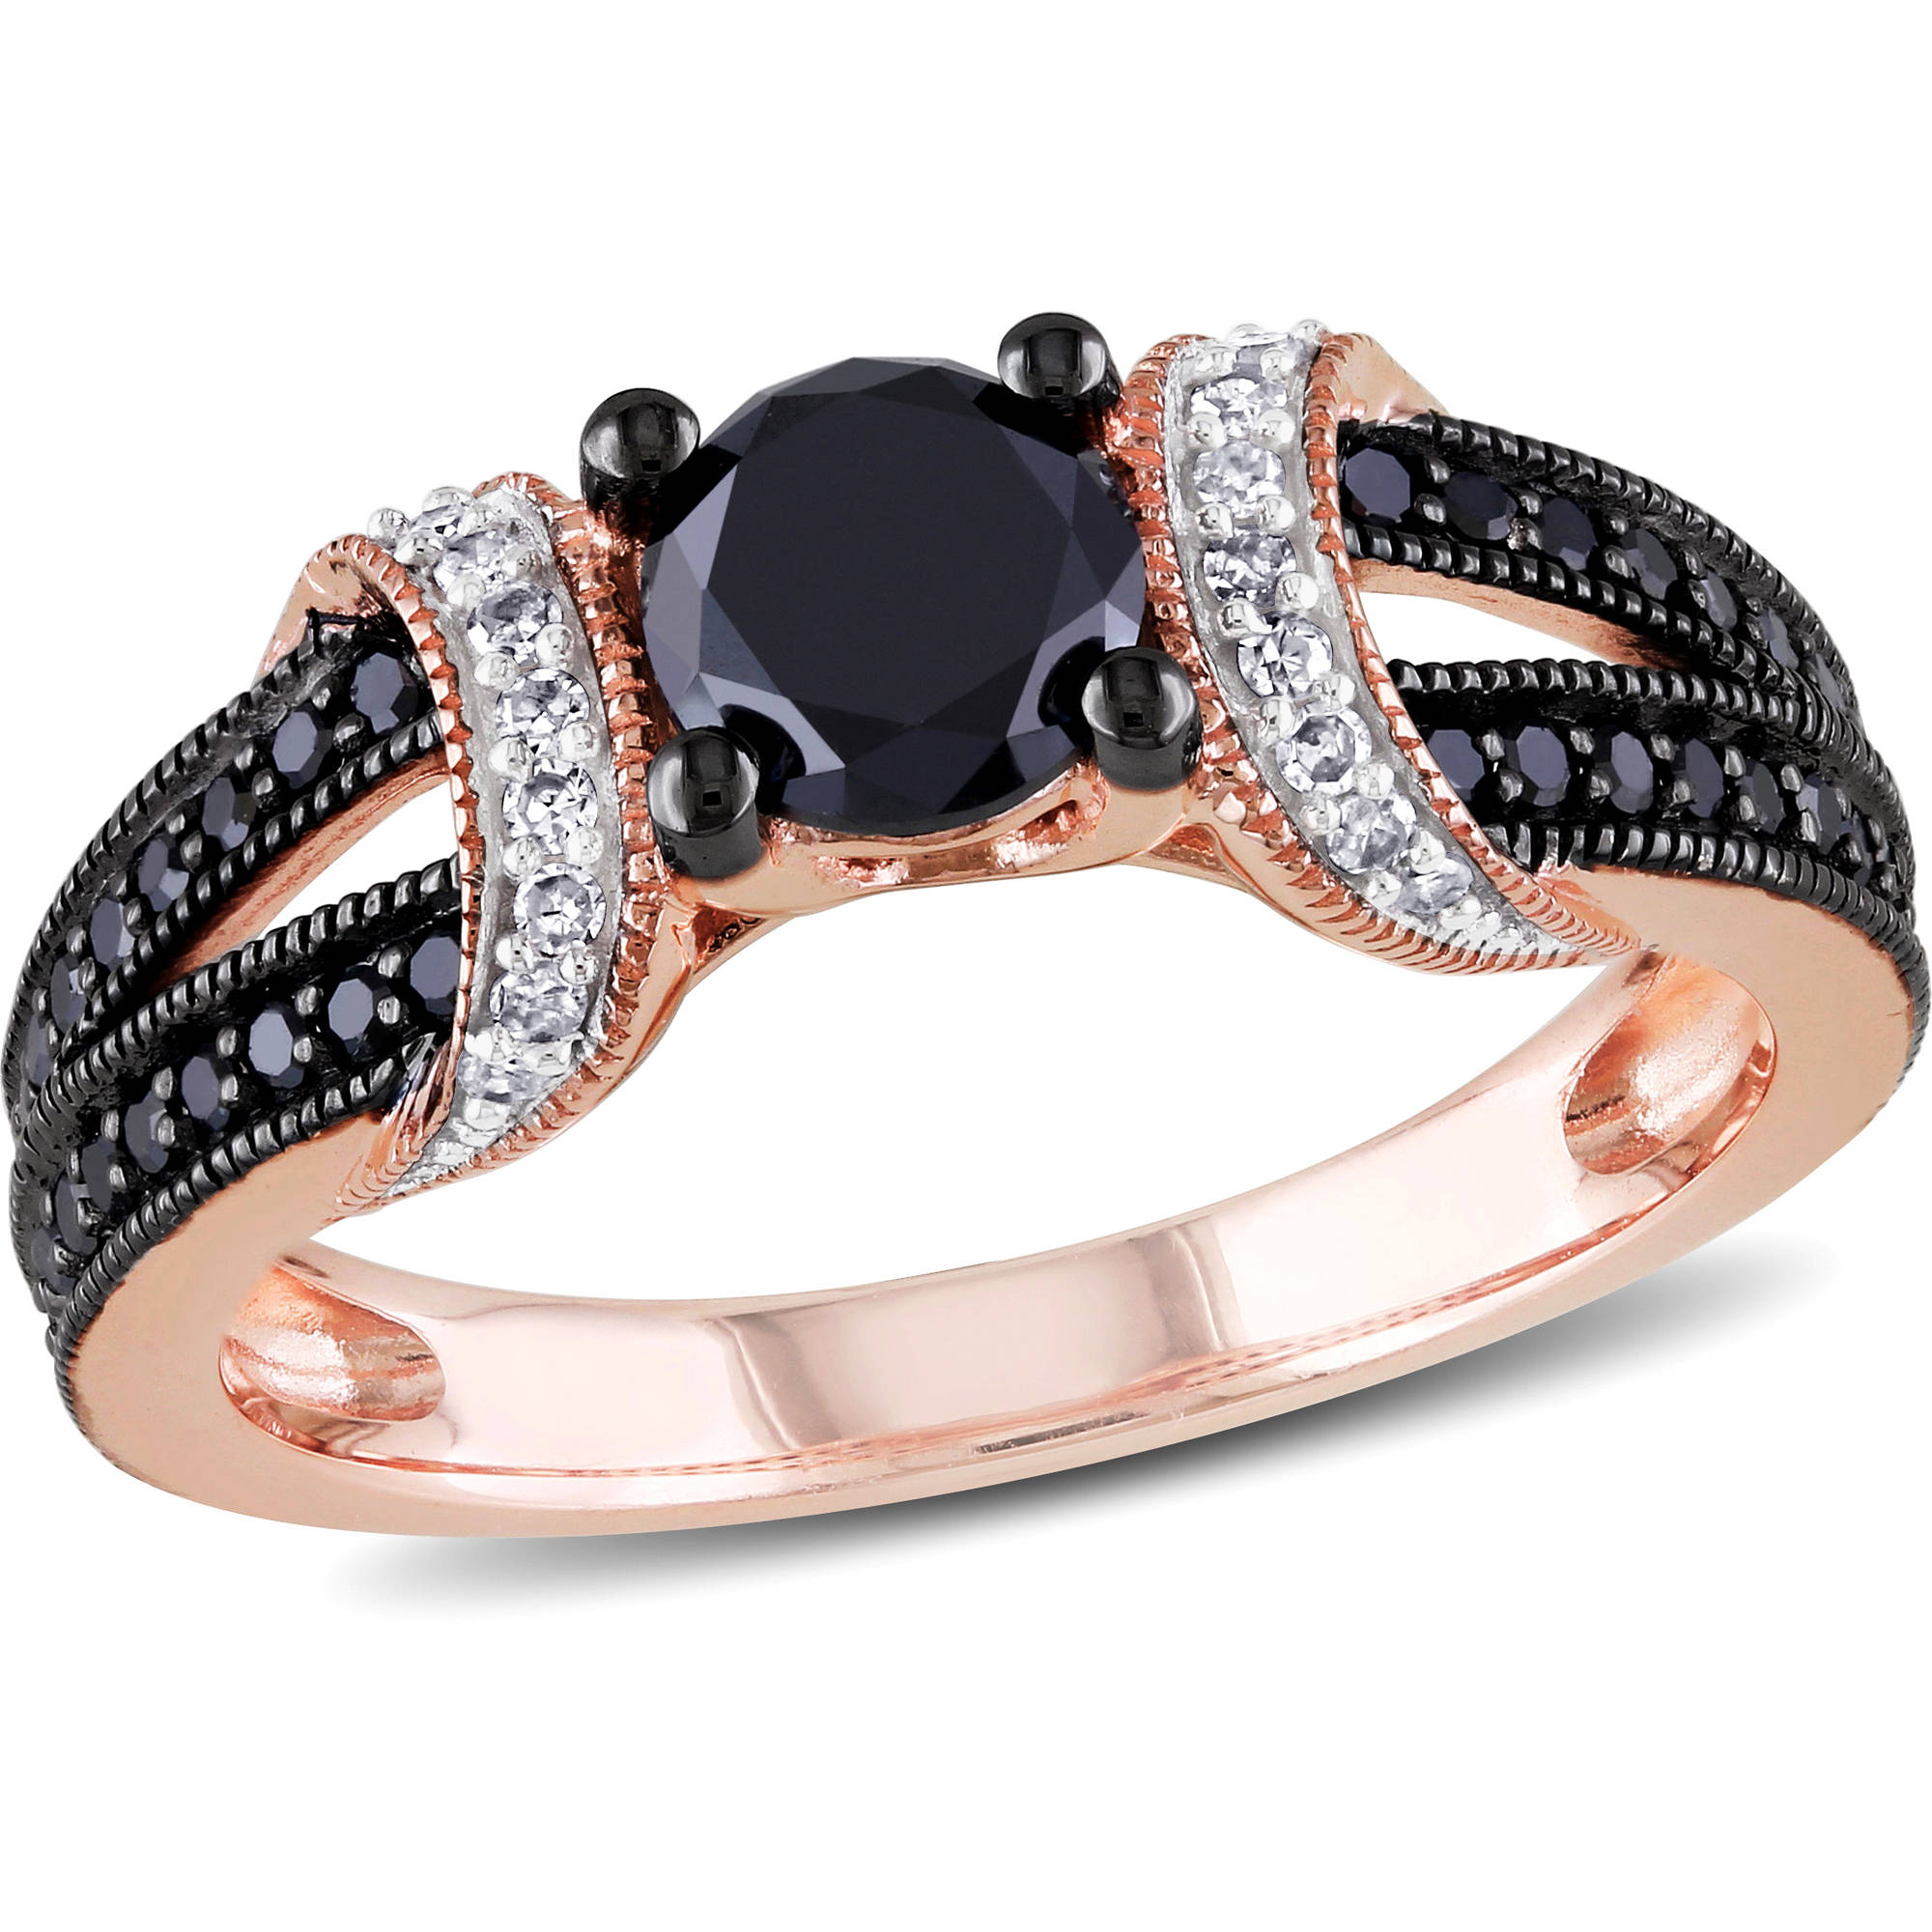 Asteria 1 Carat Black and White Diamond 10kt Pink Gold Loop Style Engagement Ring by Delmar Manufacturing LLC